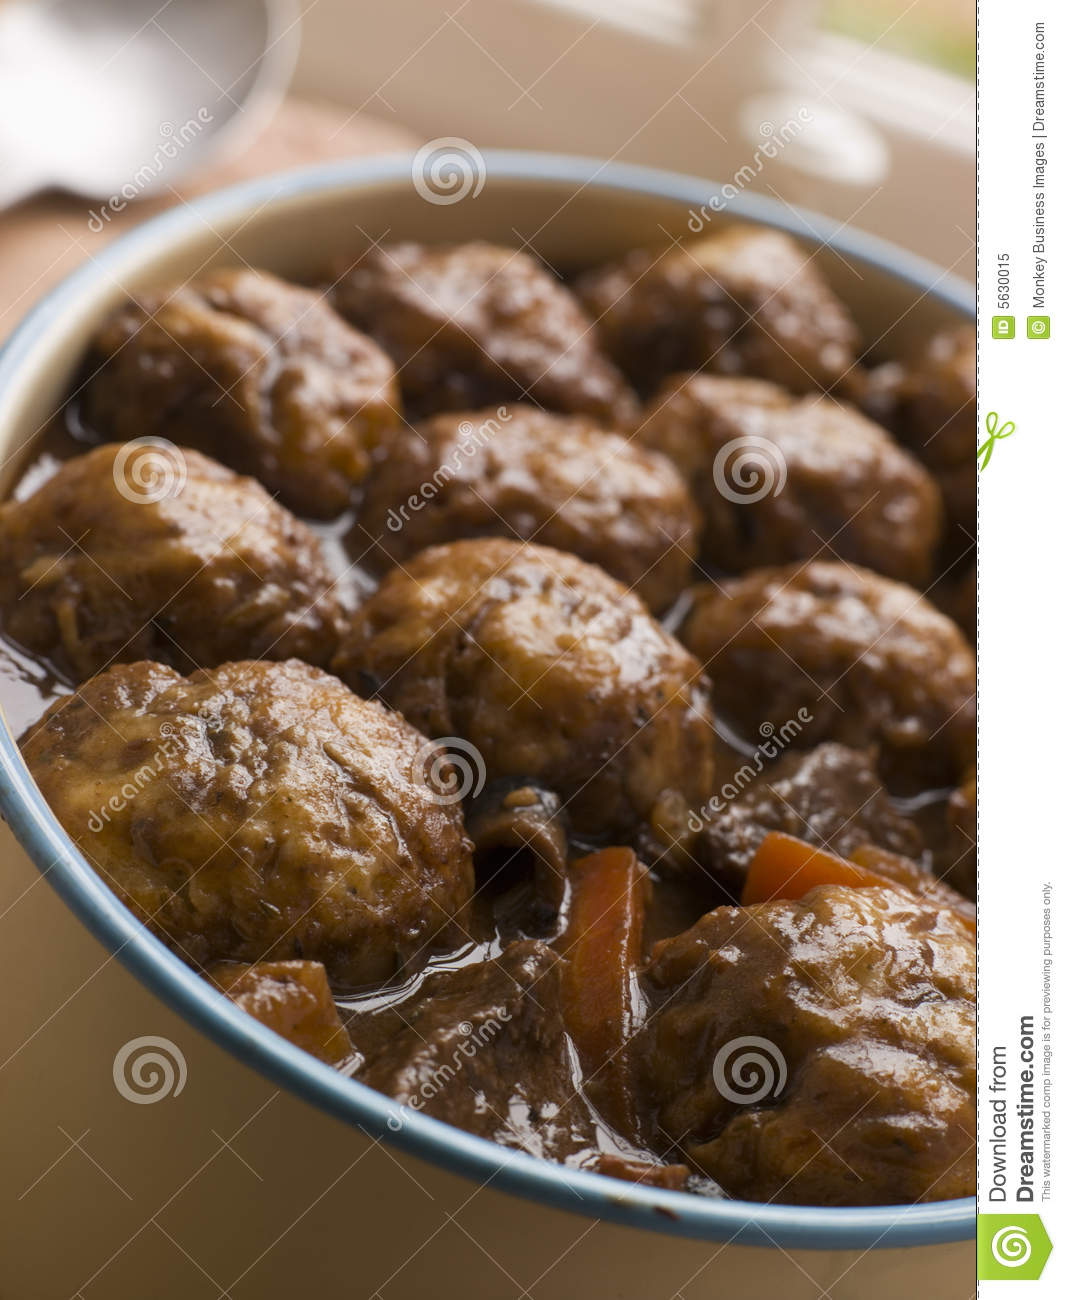 Beef Stew And Herb Dumplings Royalty Free Stock Photo - Image: 5630015